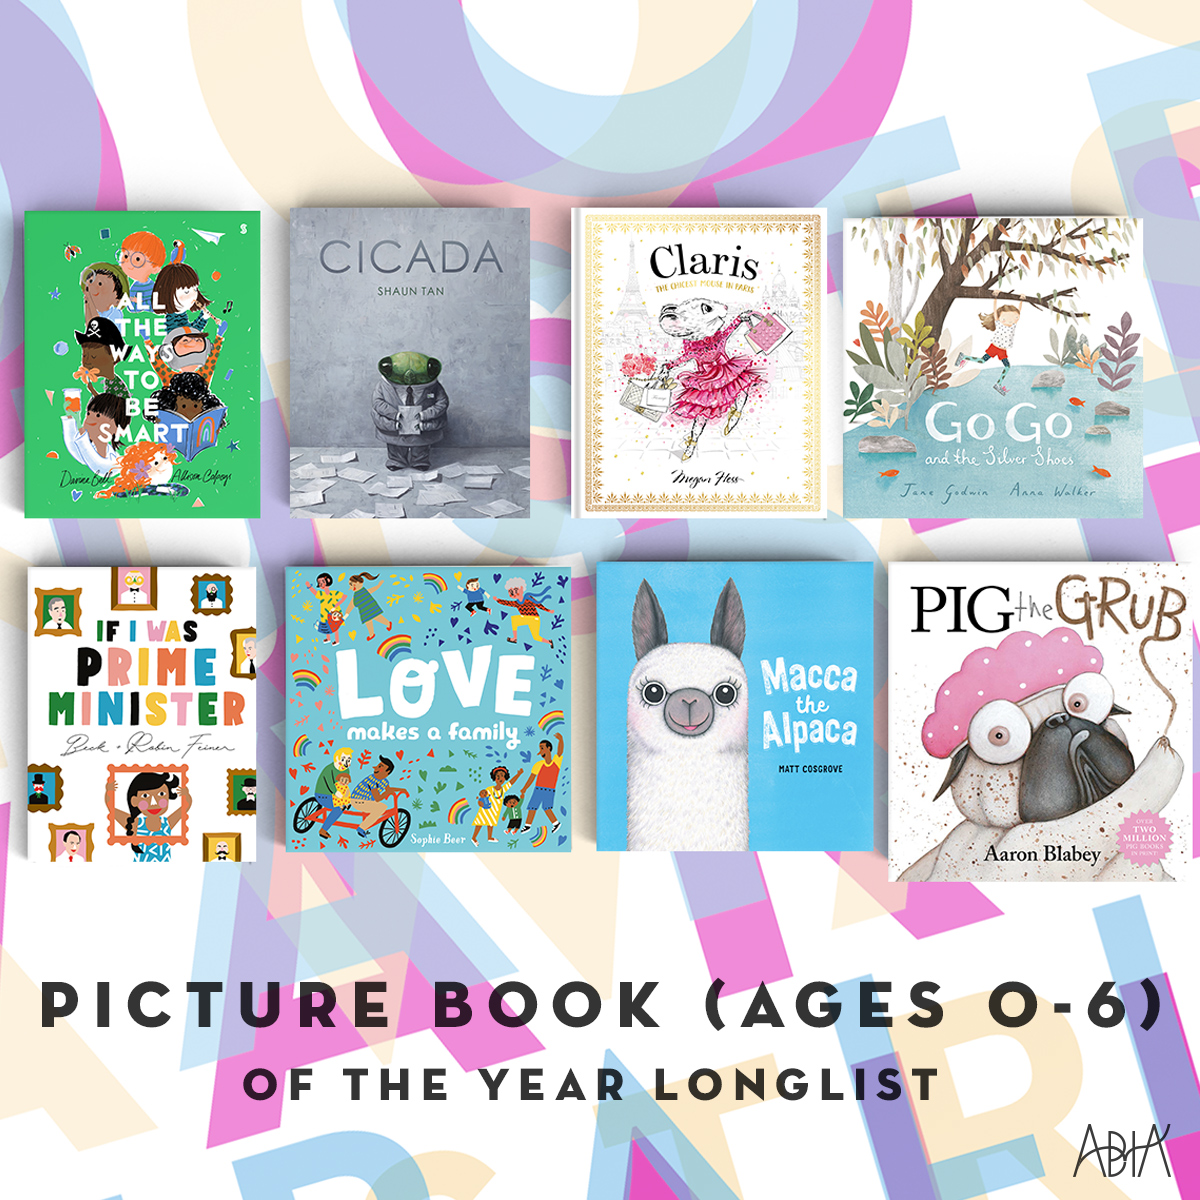 CHILDREN'S PICTURE BOOK OF THE YEAR (AGES 0-7):    All the Ways to be Smart,  Davina Bell and Allison Colpoys (Scribe Publications, Scribble Kids' Books)   Cicada , Shaun Tan (Hachette Australia Pty Ltd, Lothian Children's Books)   Claris: The Chicest Mouse in Paris , Megan Hess (Hardie Grant Egmont, Hardie Grant Egmont)   Go Go and the Silver Shoes , Jane Godwin and Anna Walker (Penguin Random House Australia, Viking)   If I Was Prime Minister,  Beck and Robin Feiner(HarperCollins Publishers, ABC Books)   Love Makes a Family , Sophie Beer (Hardie Grant Egmont, Little Hare Books)   Macca the Alpaca,  Matt Cosgrove (Scholastic Australia, Koala Books)   Pig the Grub,  Aaron Blabey (Scholastic Australia, Scholastic Press)